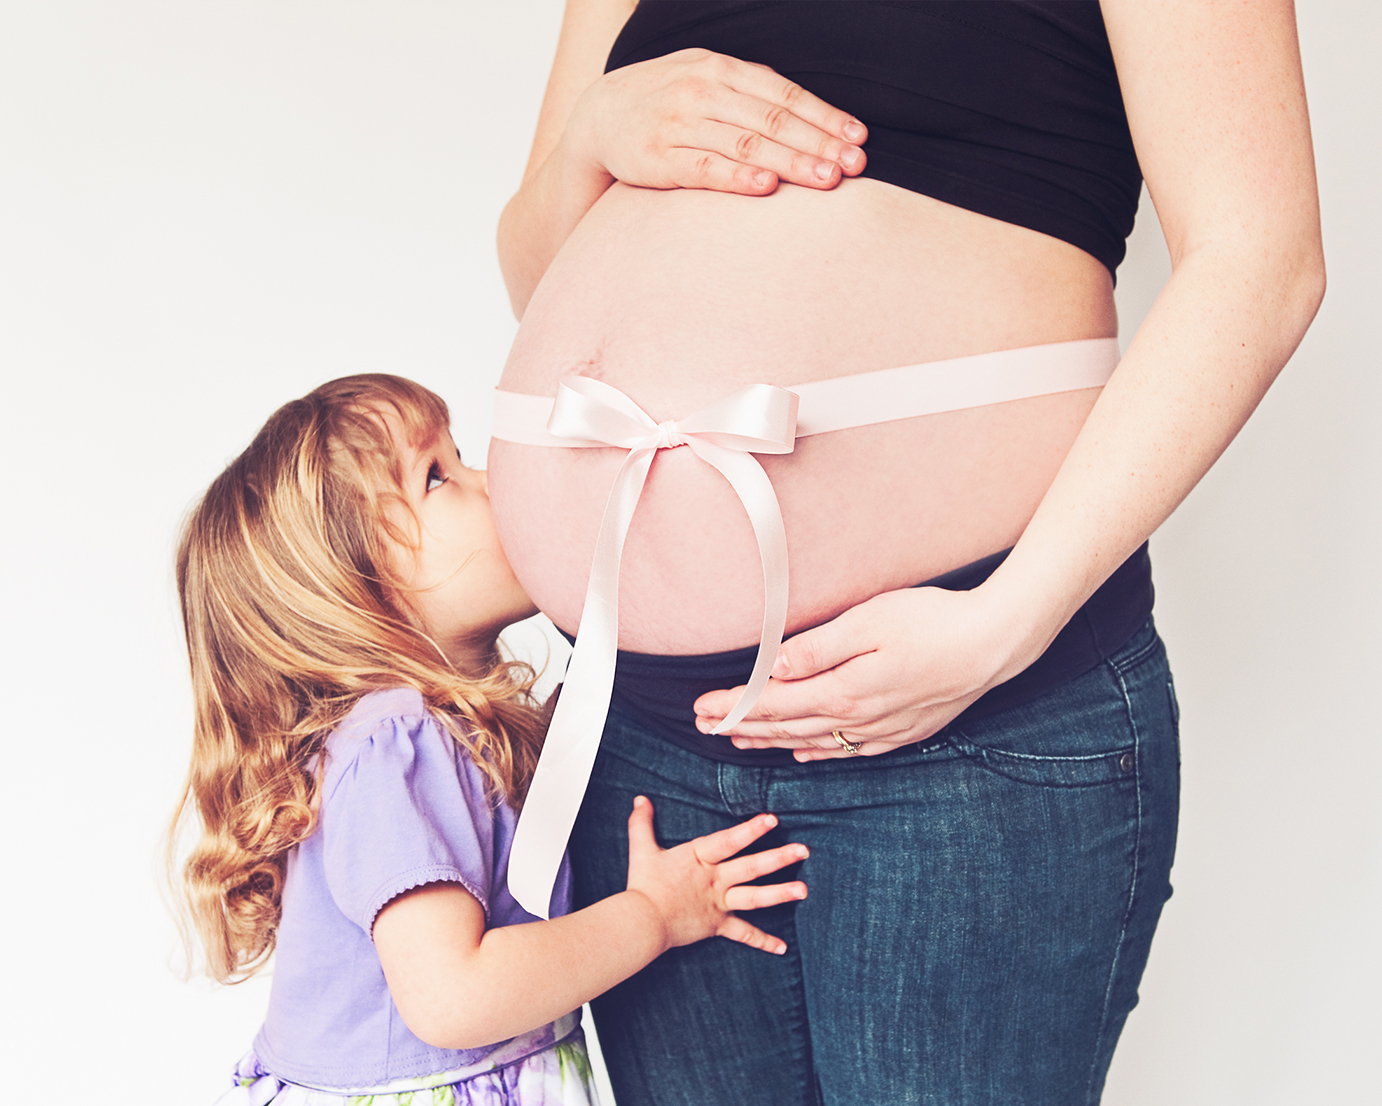 Belly - Watchful Kiss 8x10